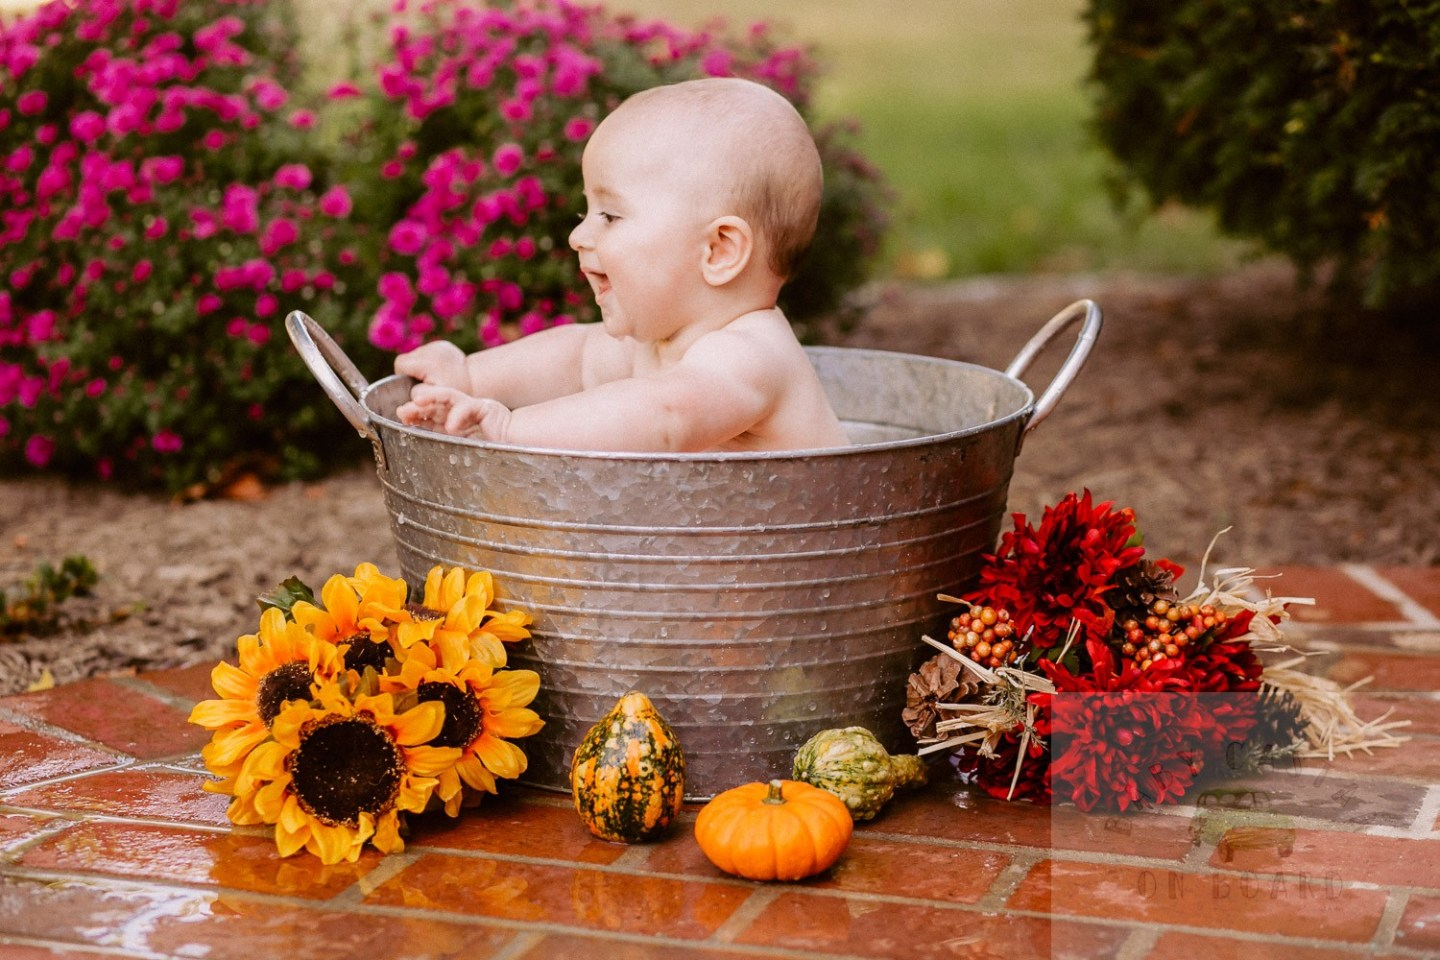 Fall Baby Photo Shoot Ideas featured by top US mommy blog, Baby Castan on Board: image of a cute baby in a pumpkin milk bath